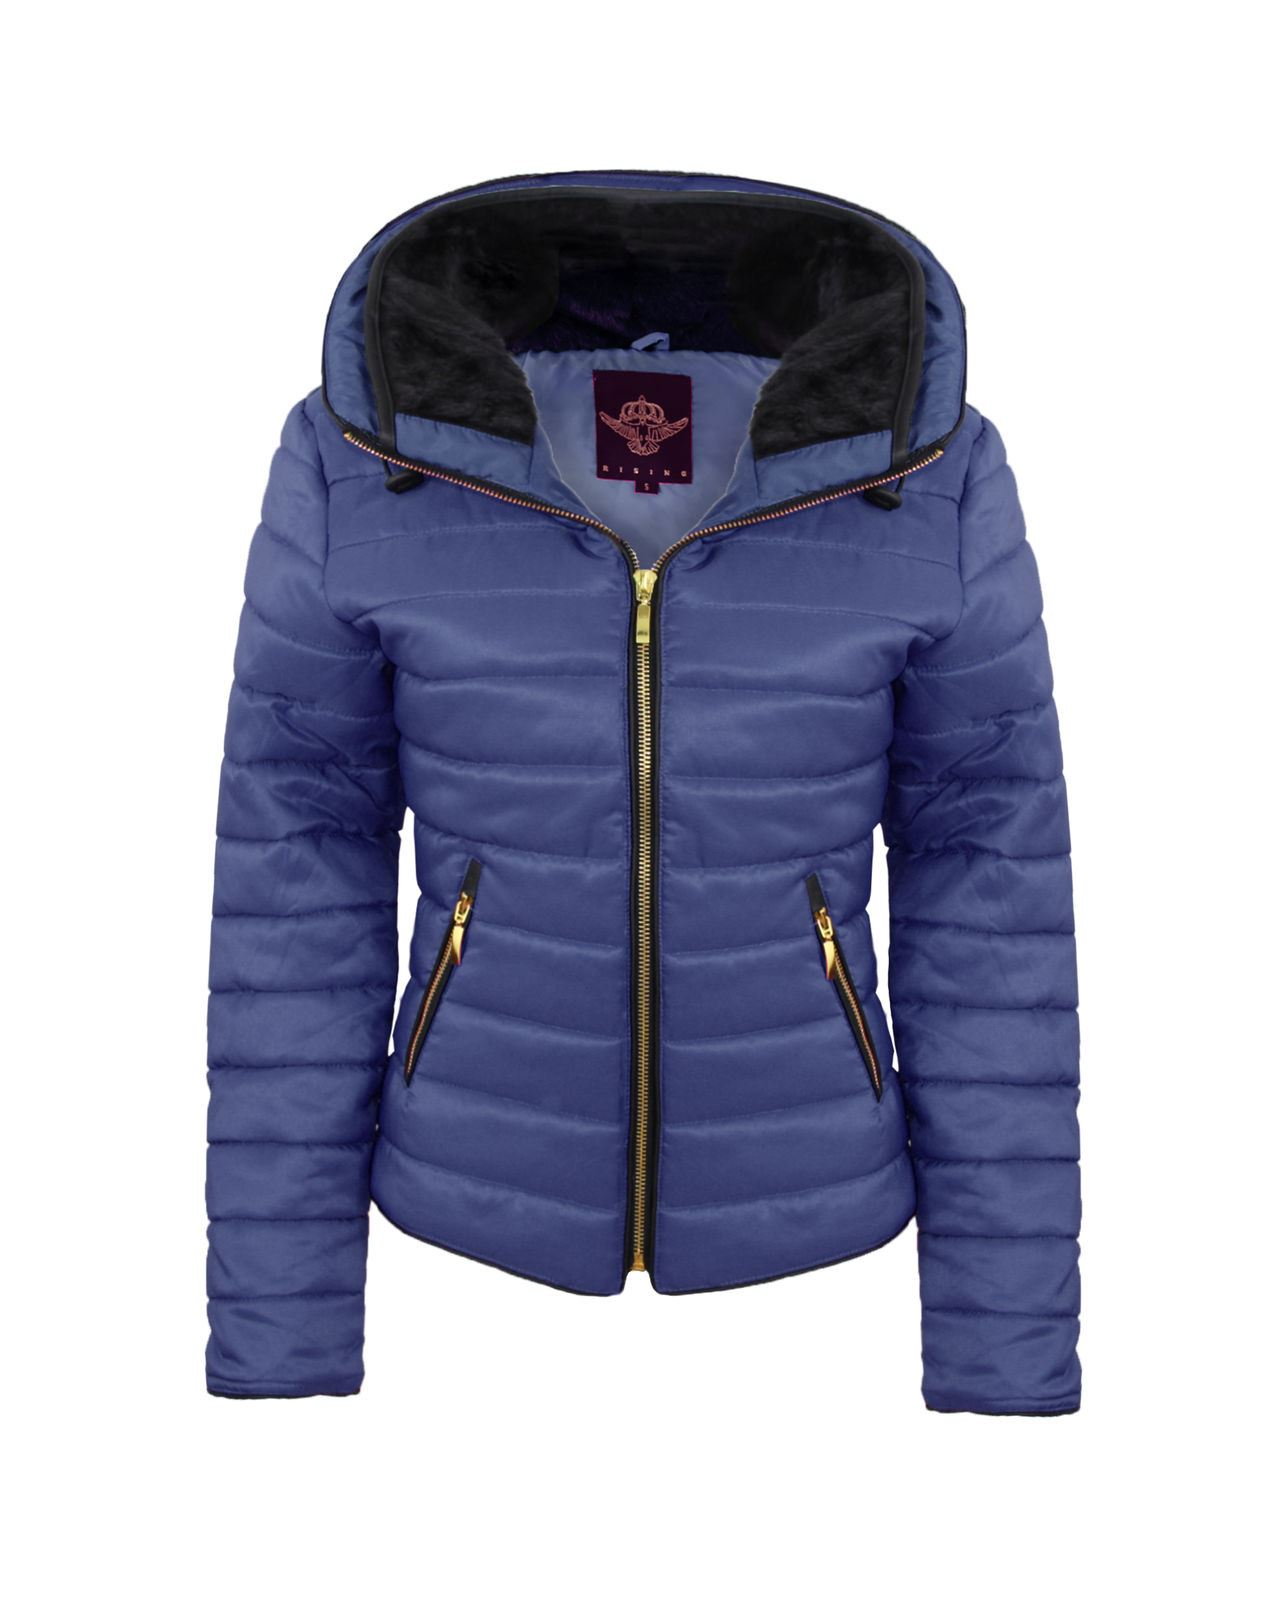 e2a24dc6203b Ladies Womens Bubble Quilted Padded Puffer Fur Collar Warm Thick Jacket  Coat Navy M. About this product. Picture 1 of 3  Picture 2 of 3 ...